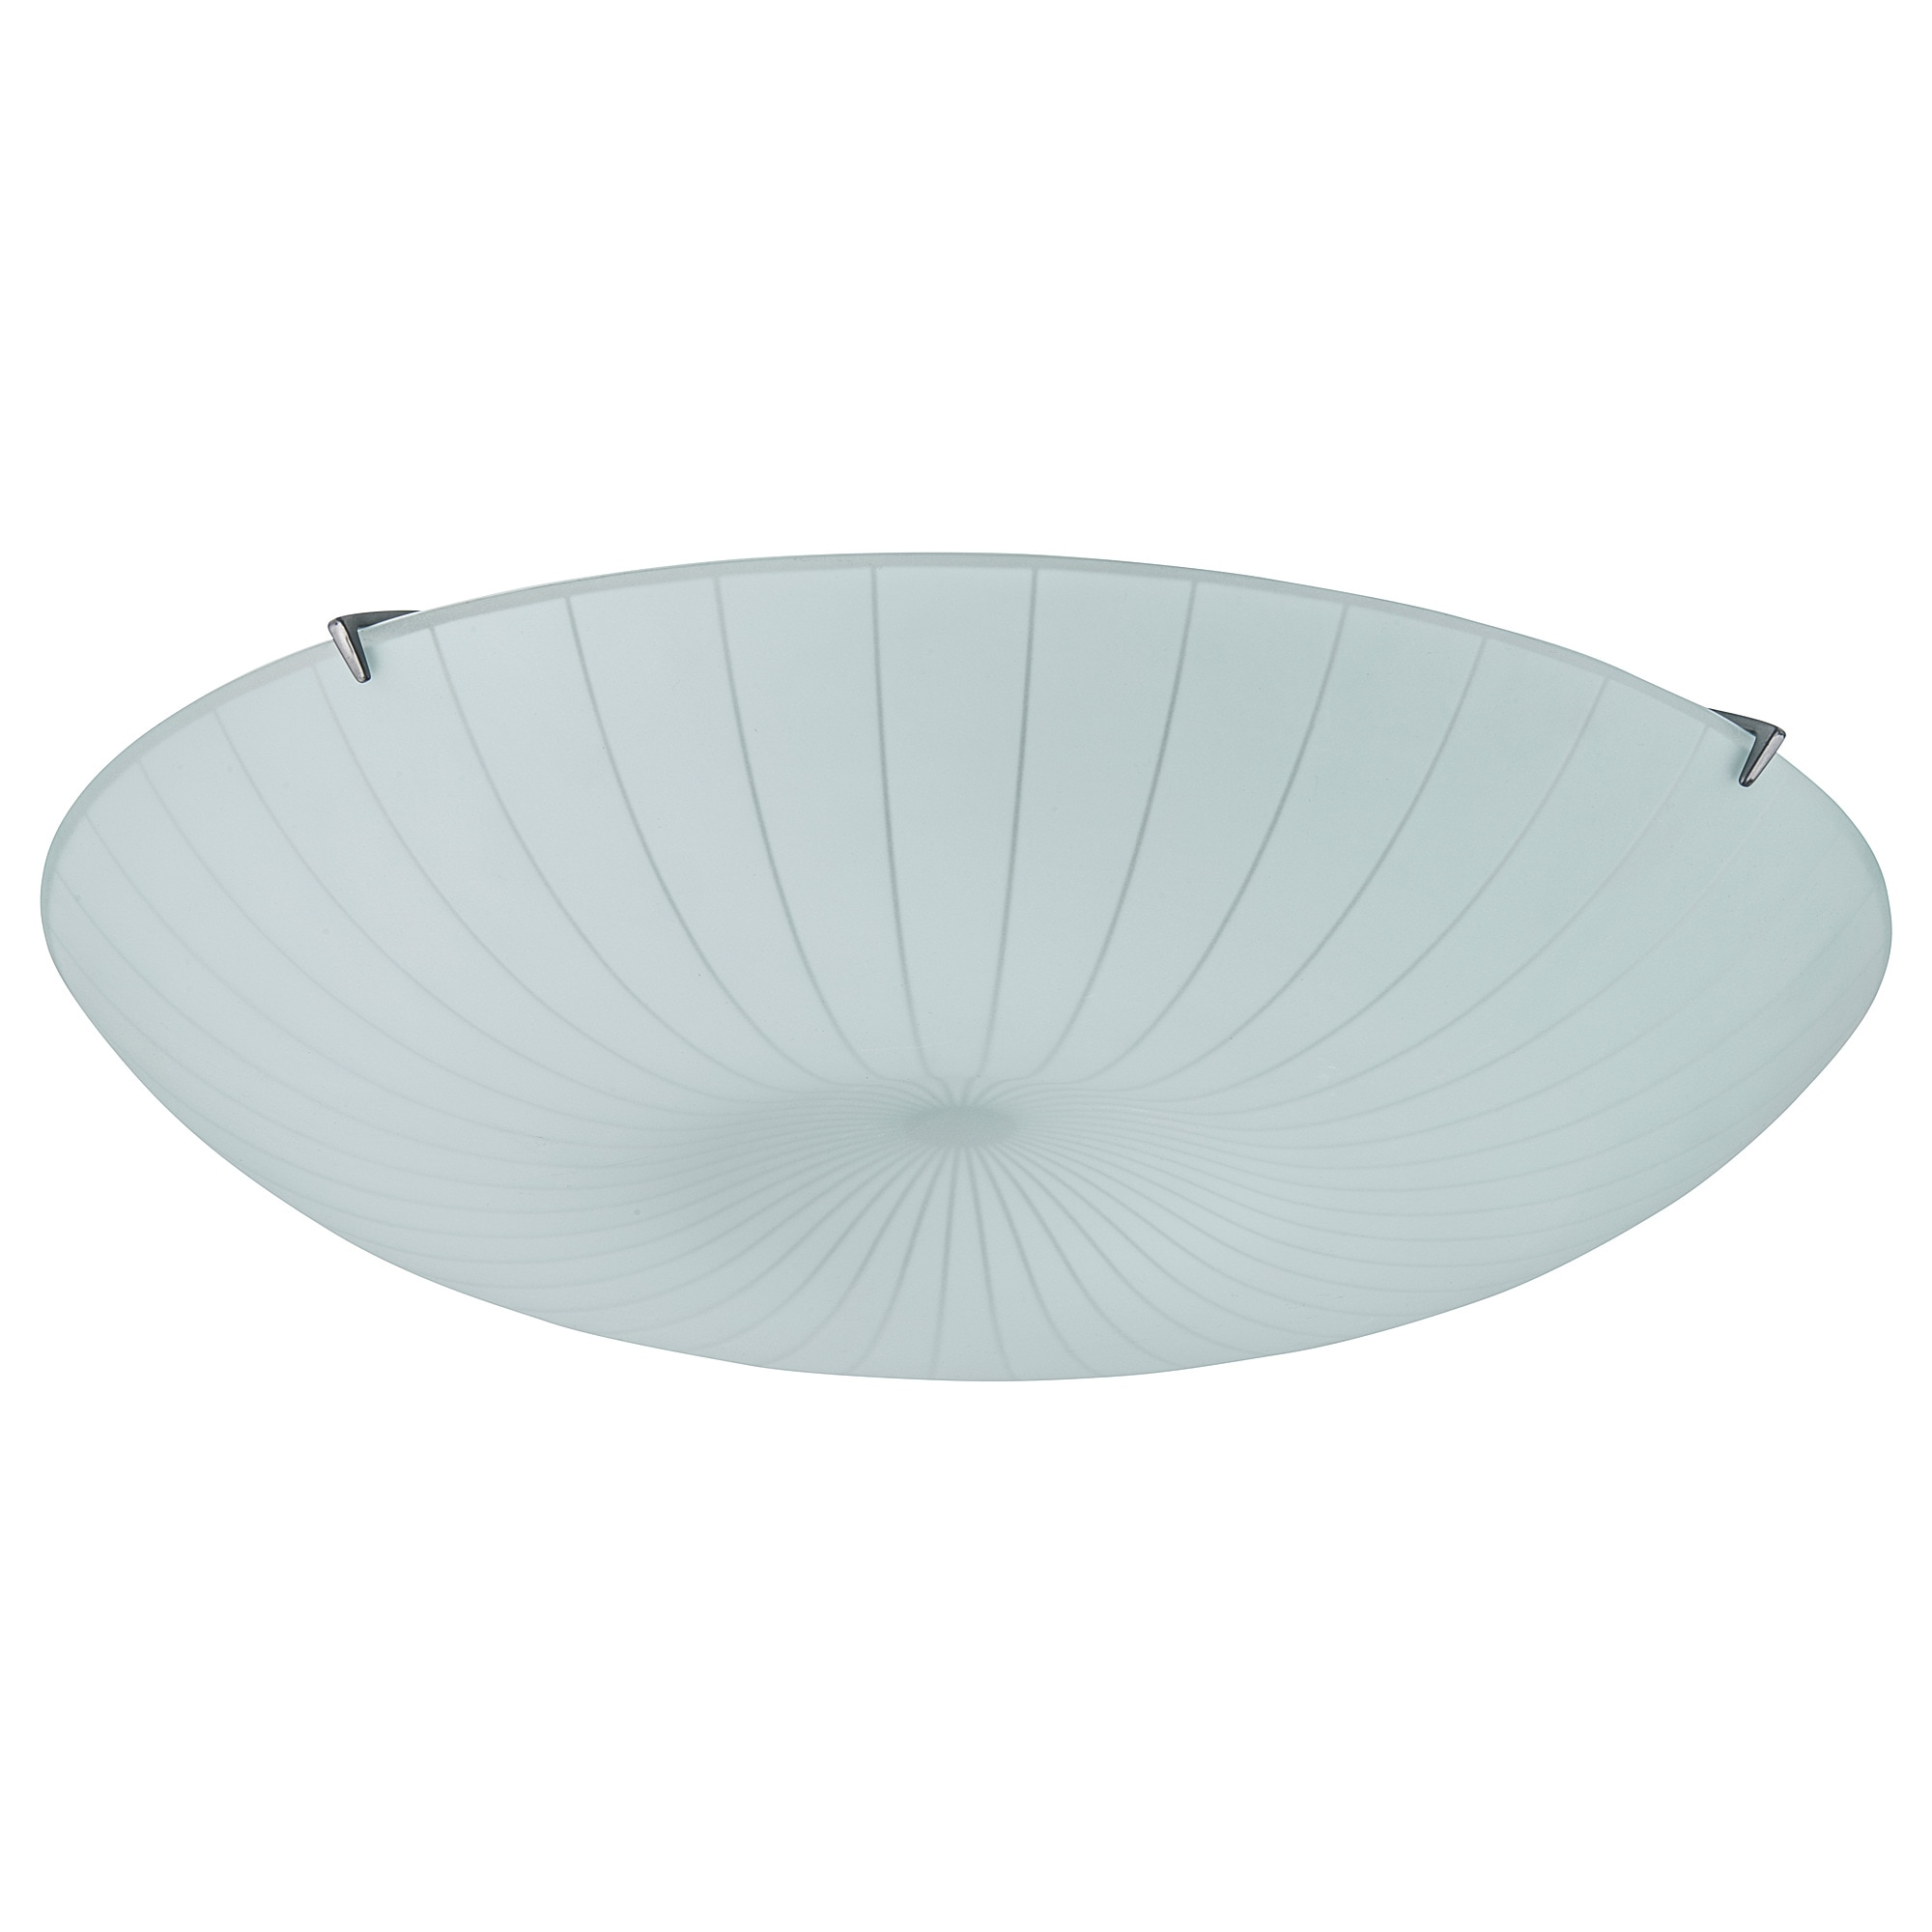 Calypso ceiling lamp ikea 2018 05 17t0500 0700 mozeypictures Gallery